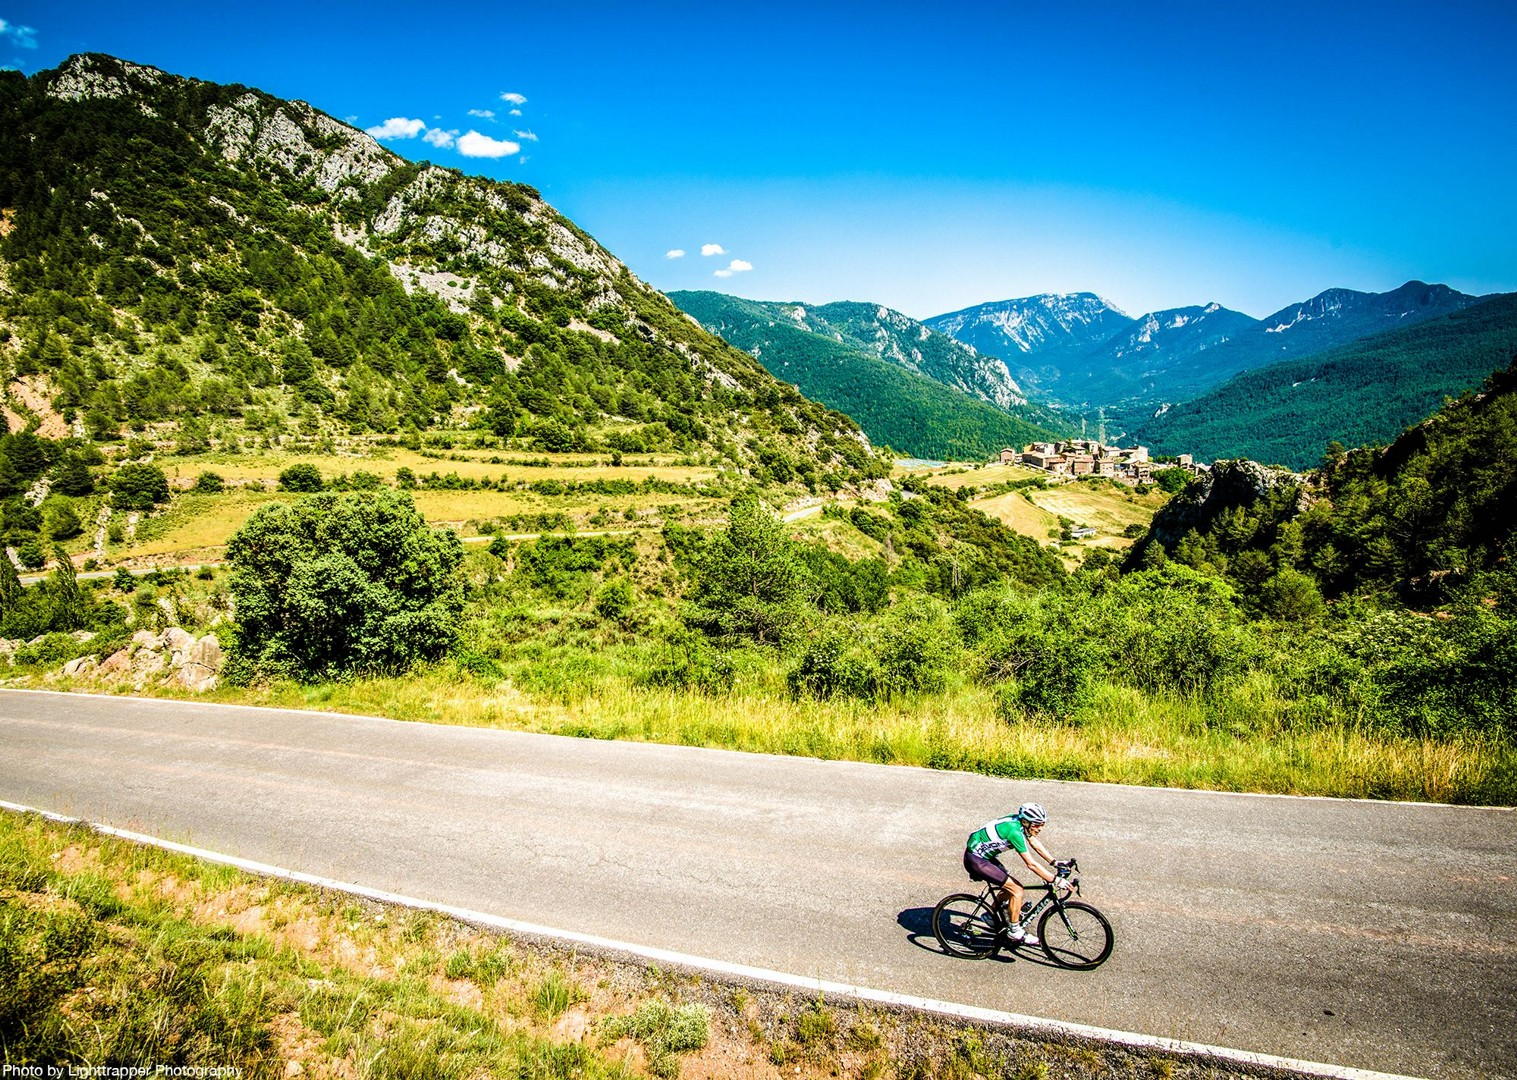 mountains-in-spanish-pyrenees-coast-to-coast-holiday-road-cycling.jpg - NEW! Spain - Spanish Pyrenees Coast to Coast - Road Cycling